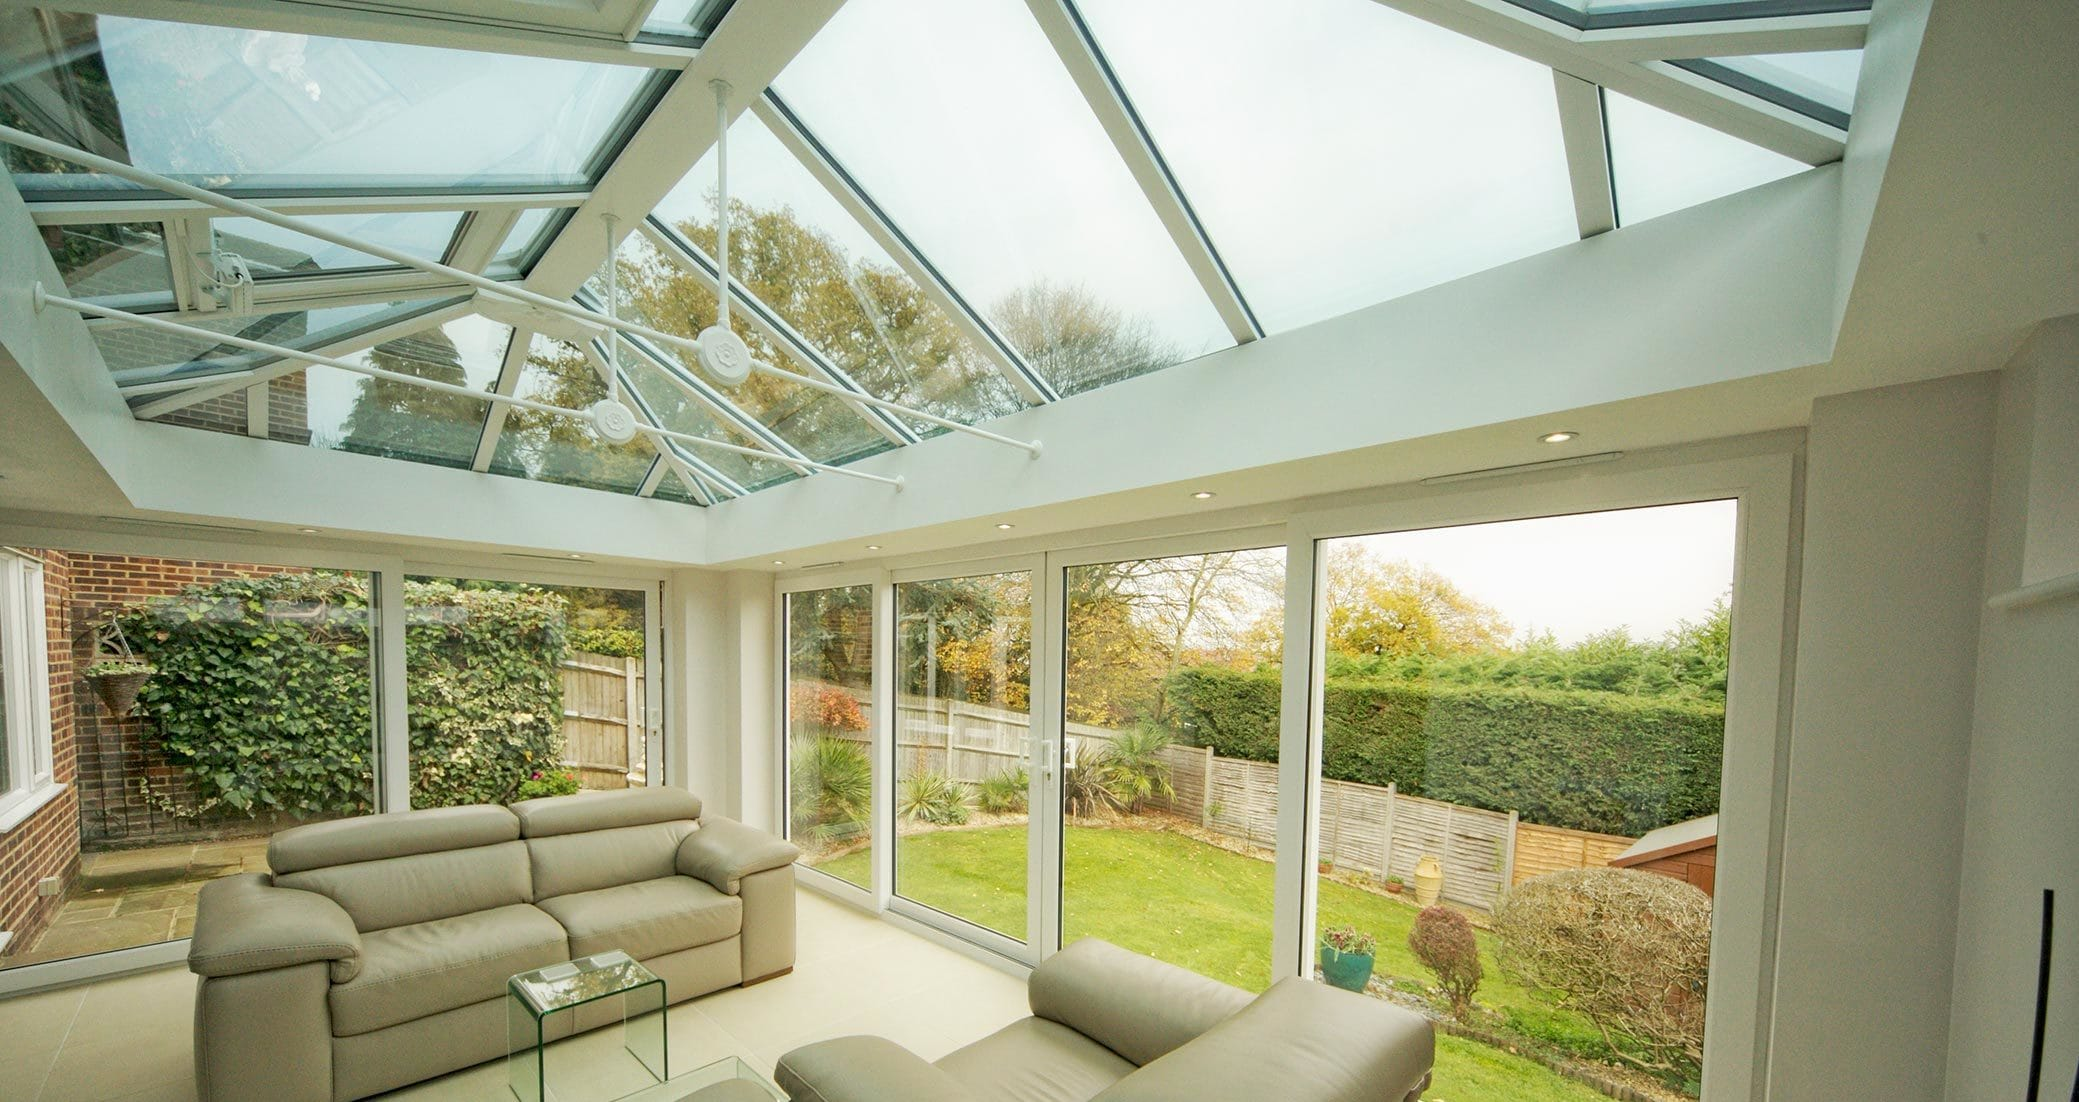 Conservatory Glass Roof Replacement Yorkshire